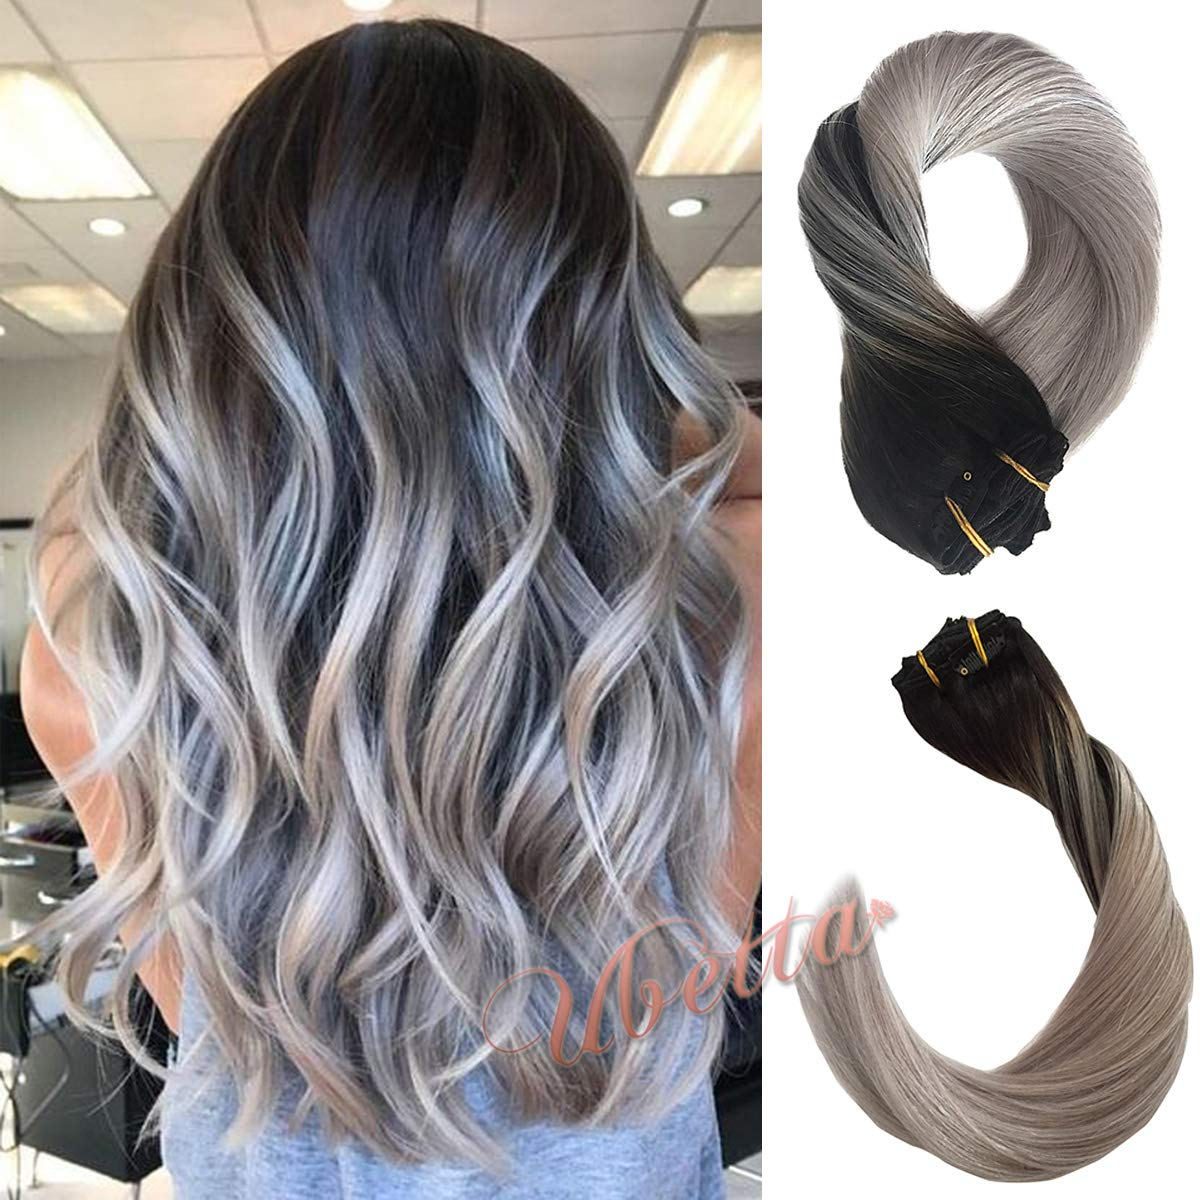 Clip in Real Hair Extensions Thicken Natural Black Fading to Silver Gray Brazilian Hair 120G 7 Pcs Double Weft Silky Straight Human Hair Remy Clip in Extensions Full Head 14'' for Women Girls by Ubetta